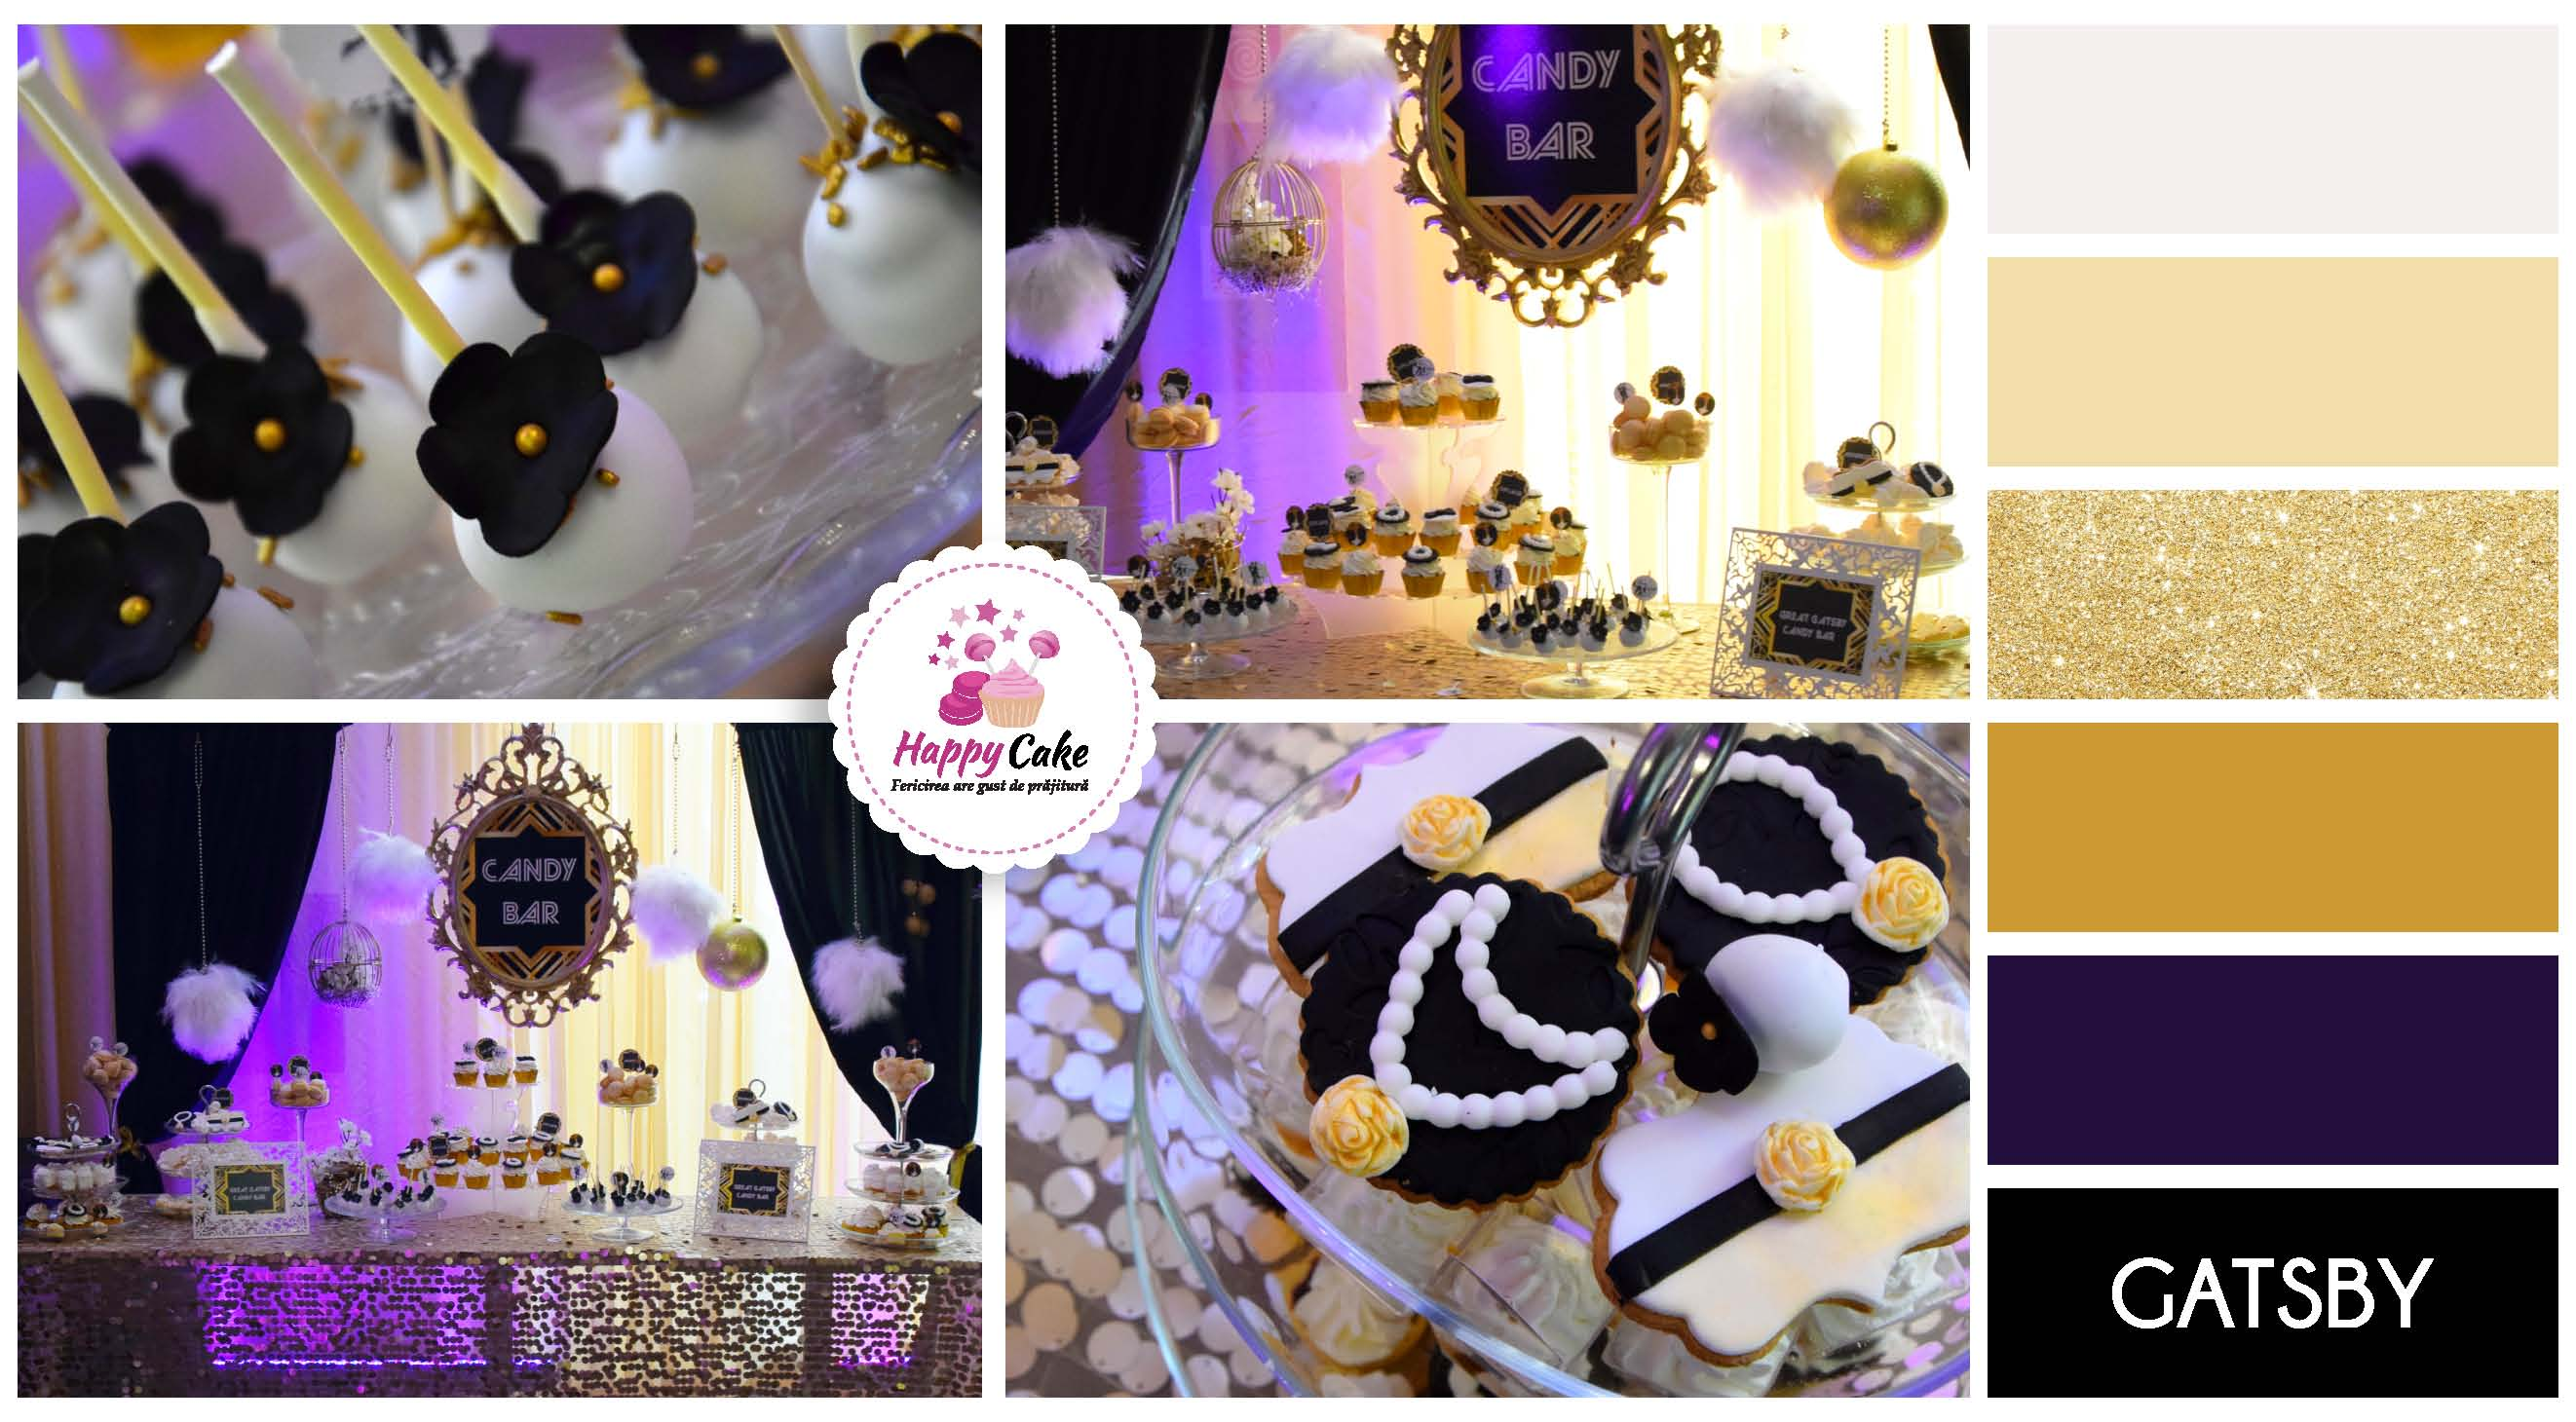 Candy Bar Brasov - Happy Cake